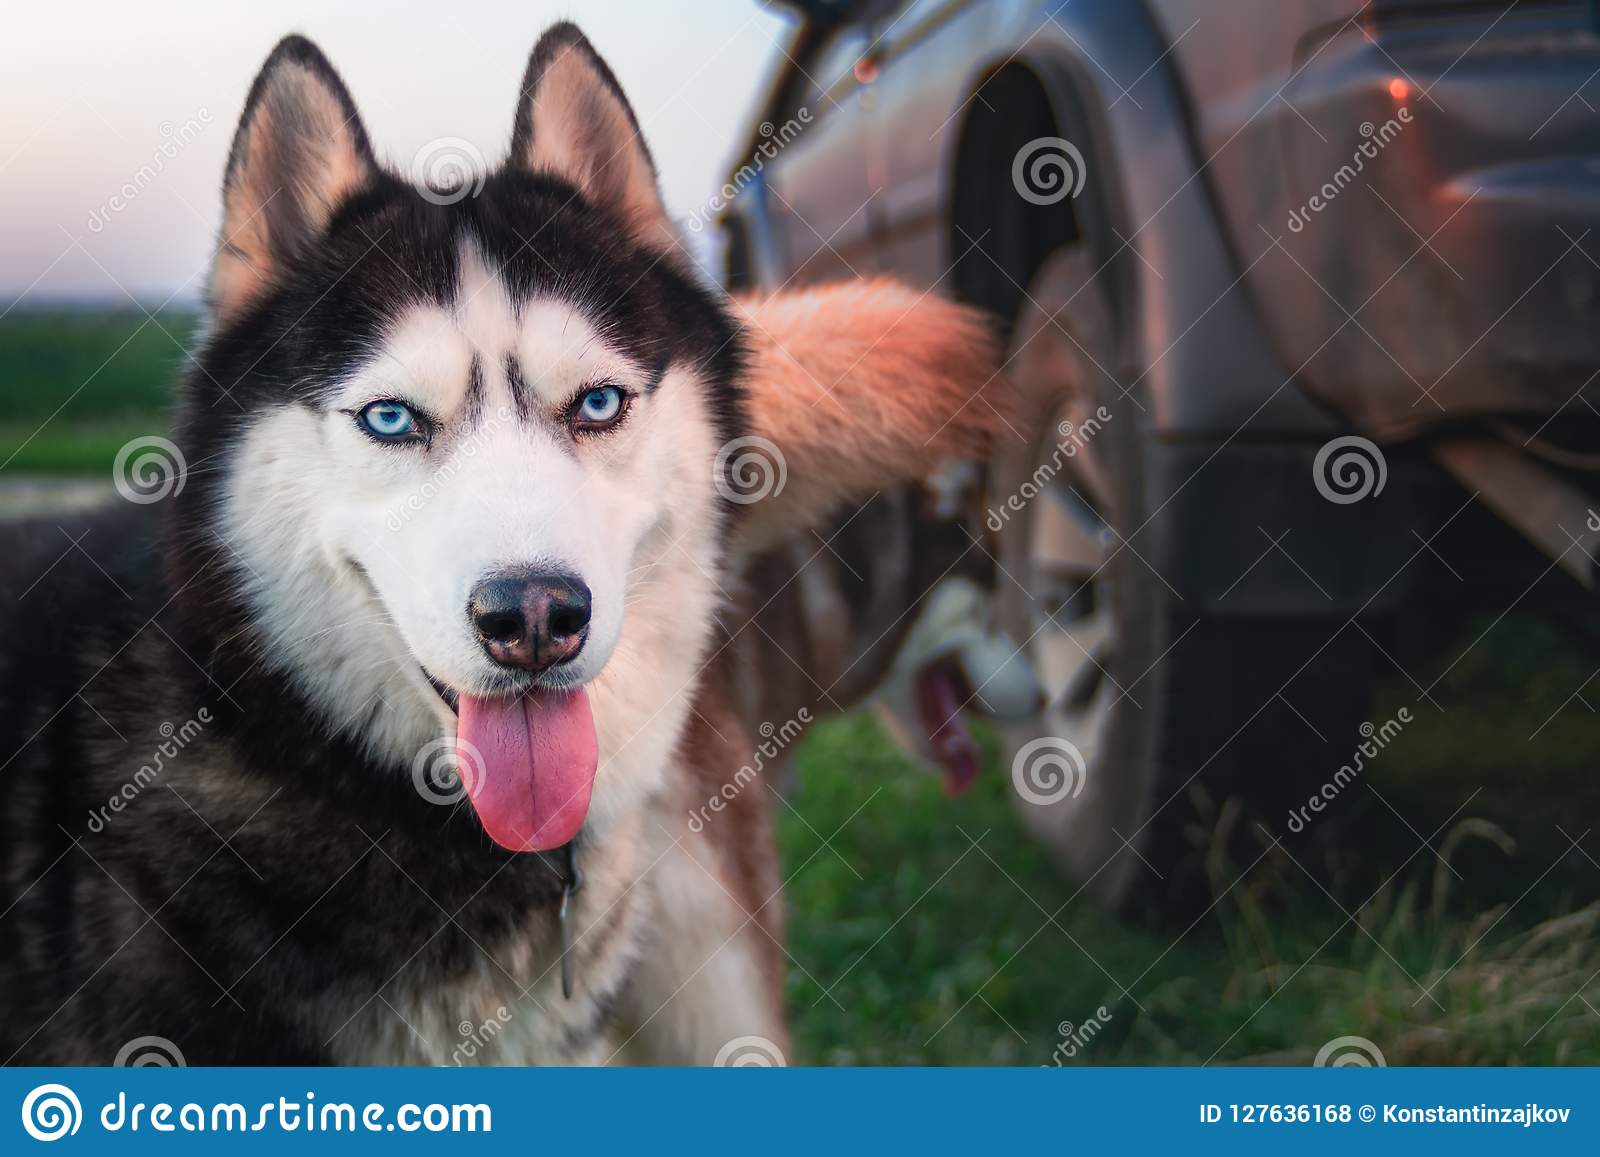 Happy husky dog. Beauty portrait Siberian husky with bright blue eyes. Copy space.